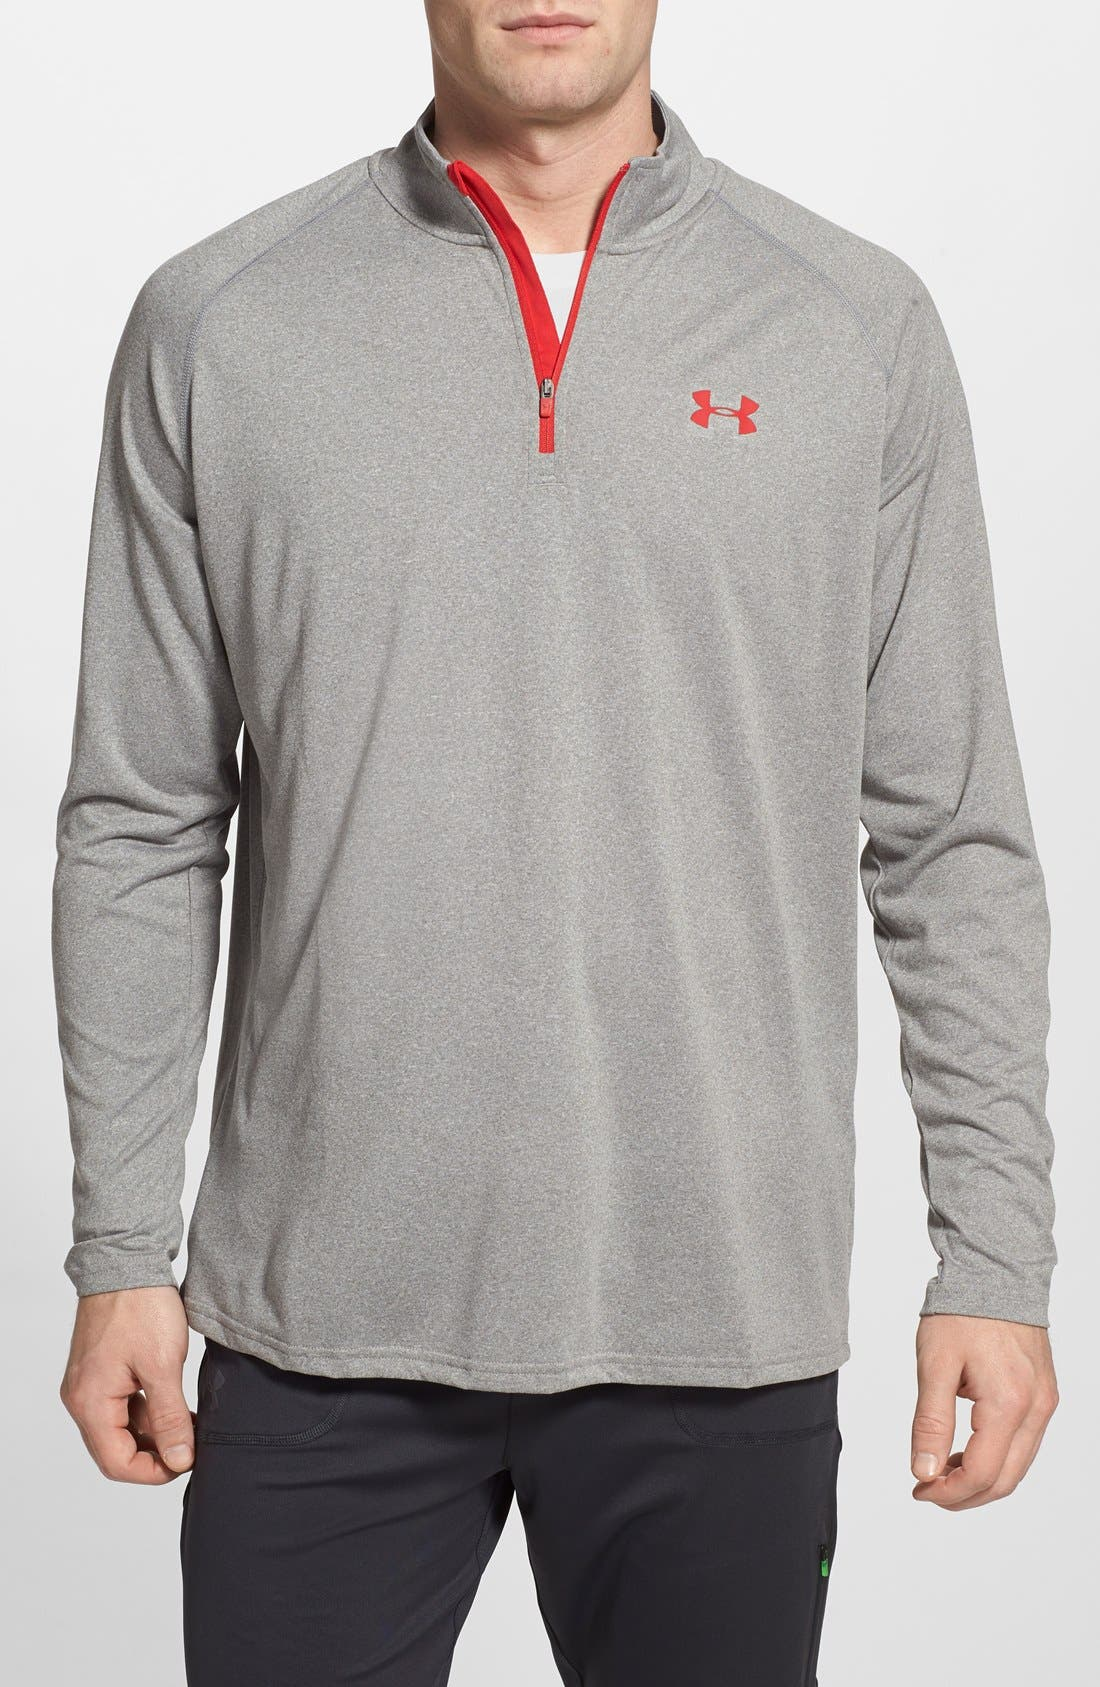 Main Image - Under Armour 'Tech' Quarter Zip Pullover